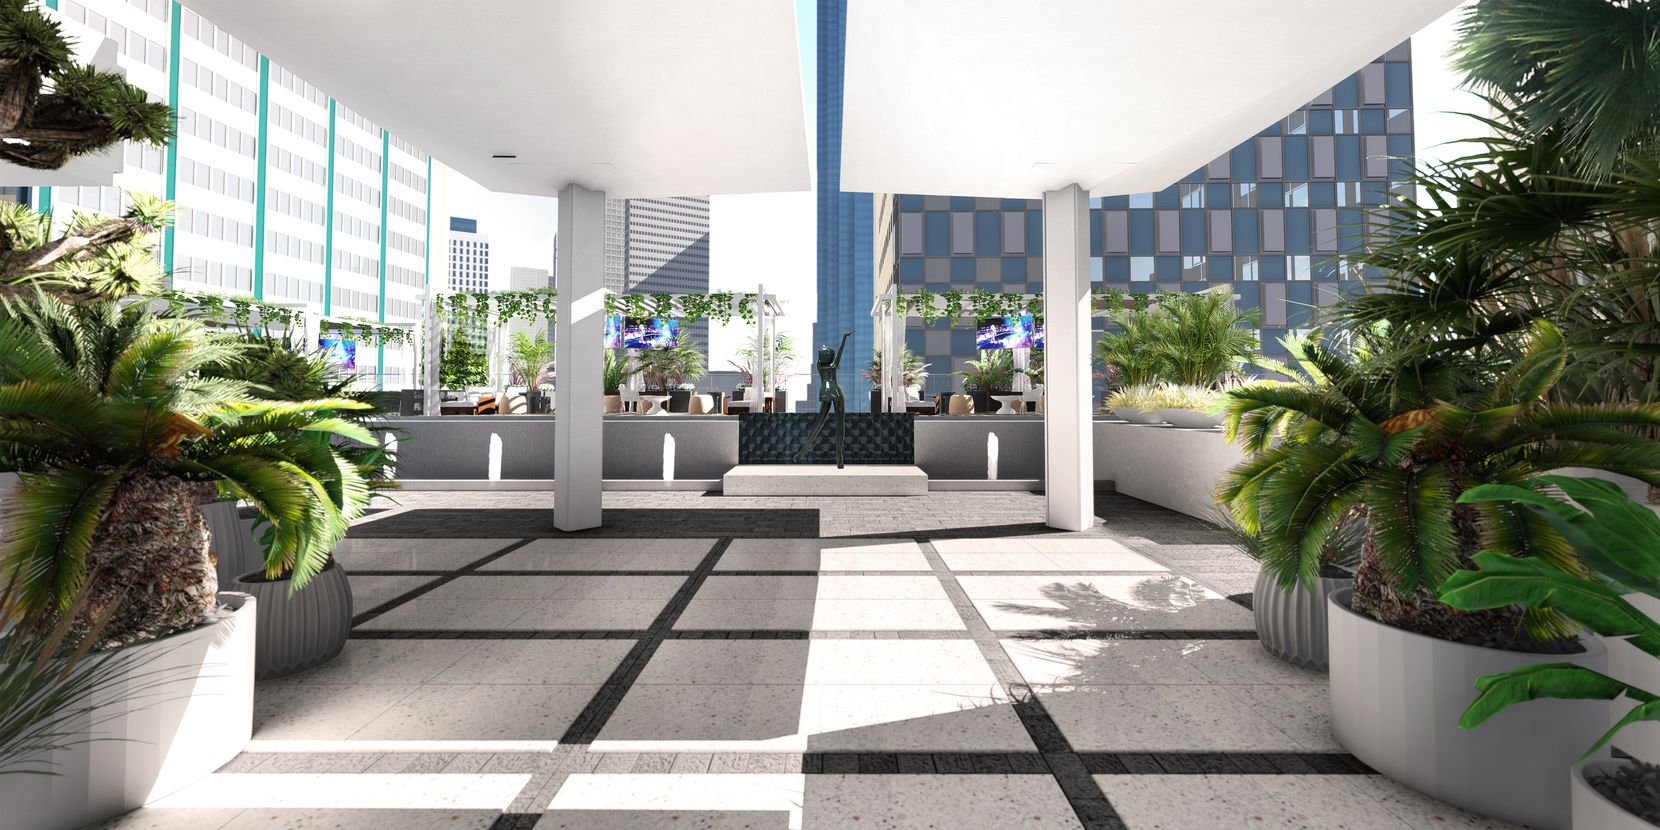 A lounge area on the ninth floor of The Drever tower.